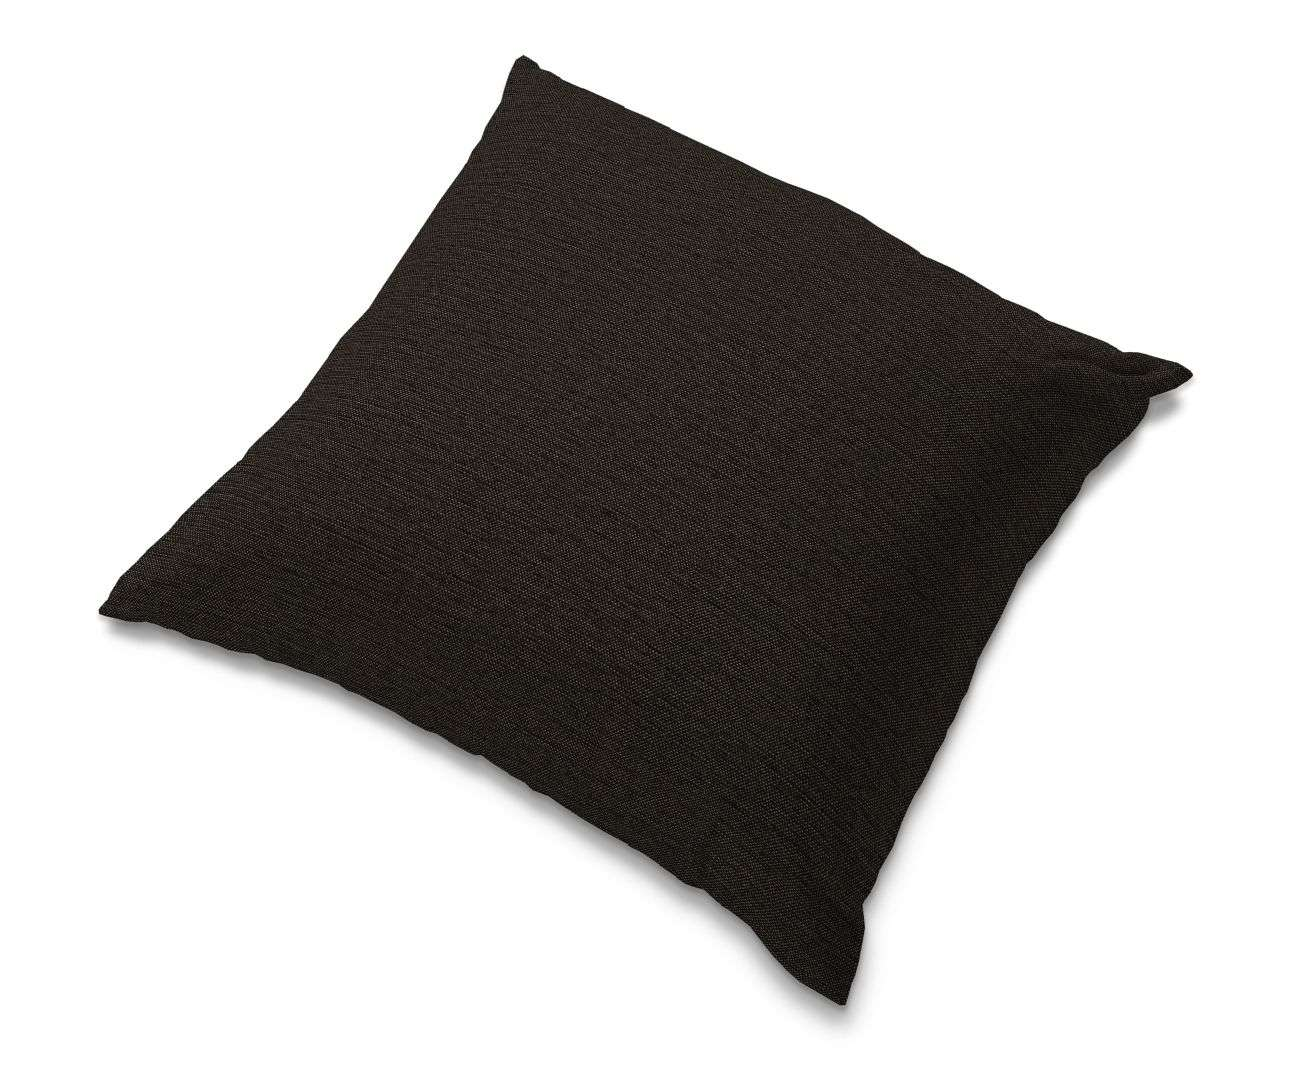 Tomelilla cushion cover 55 x 55 cm (22 x 22 inch) in collection Madrid, fabric: 105-17